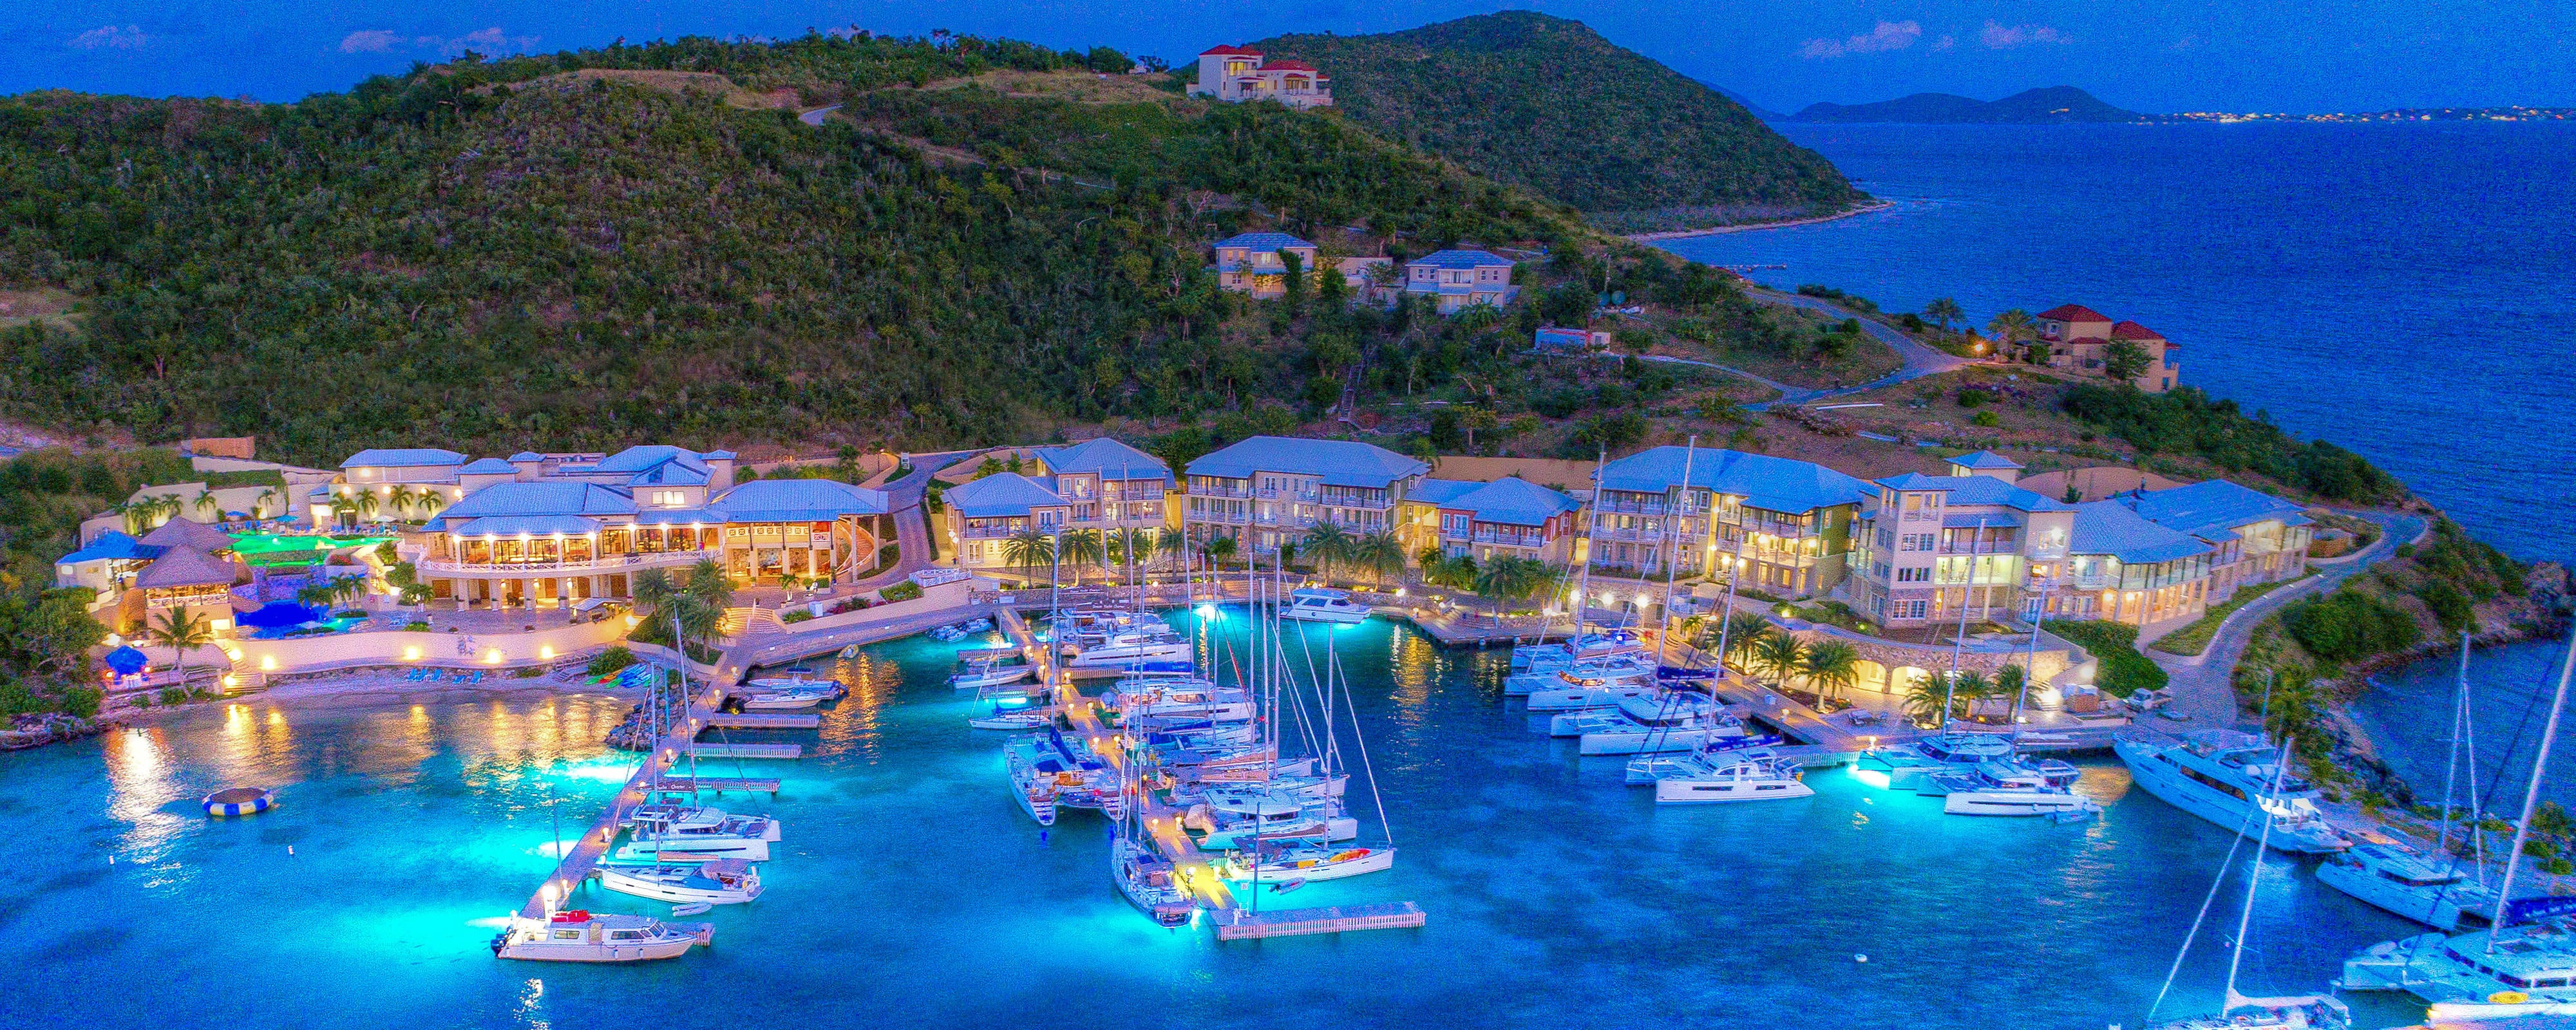 How to Get to Scrub Island Resort Spa  Marina Autograph